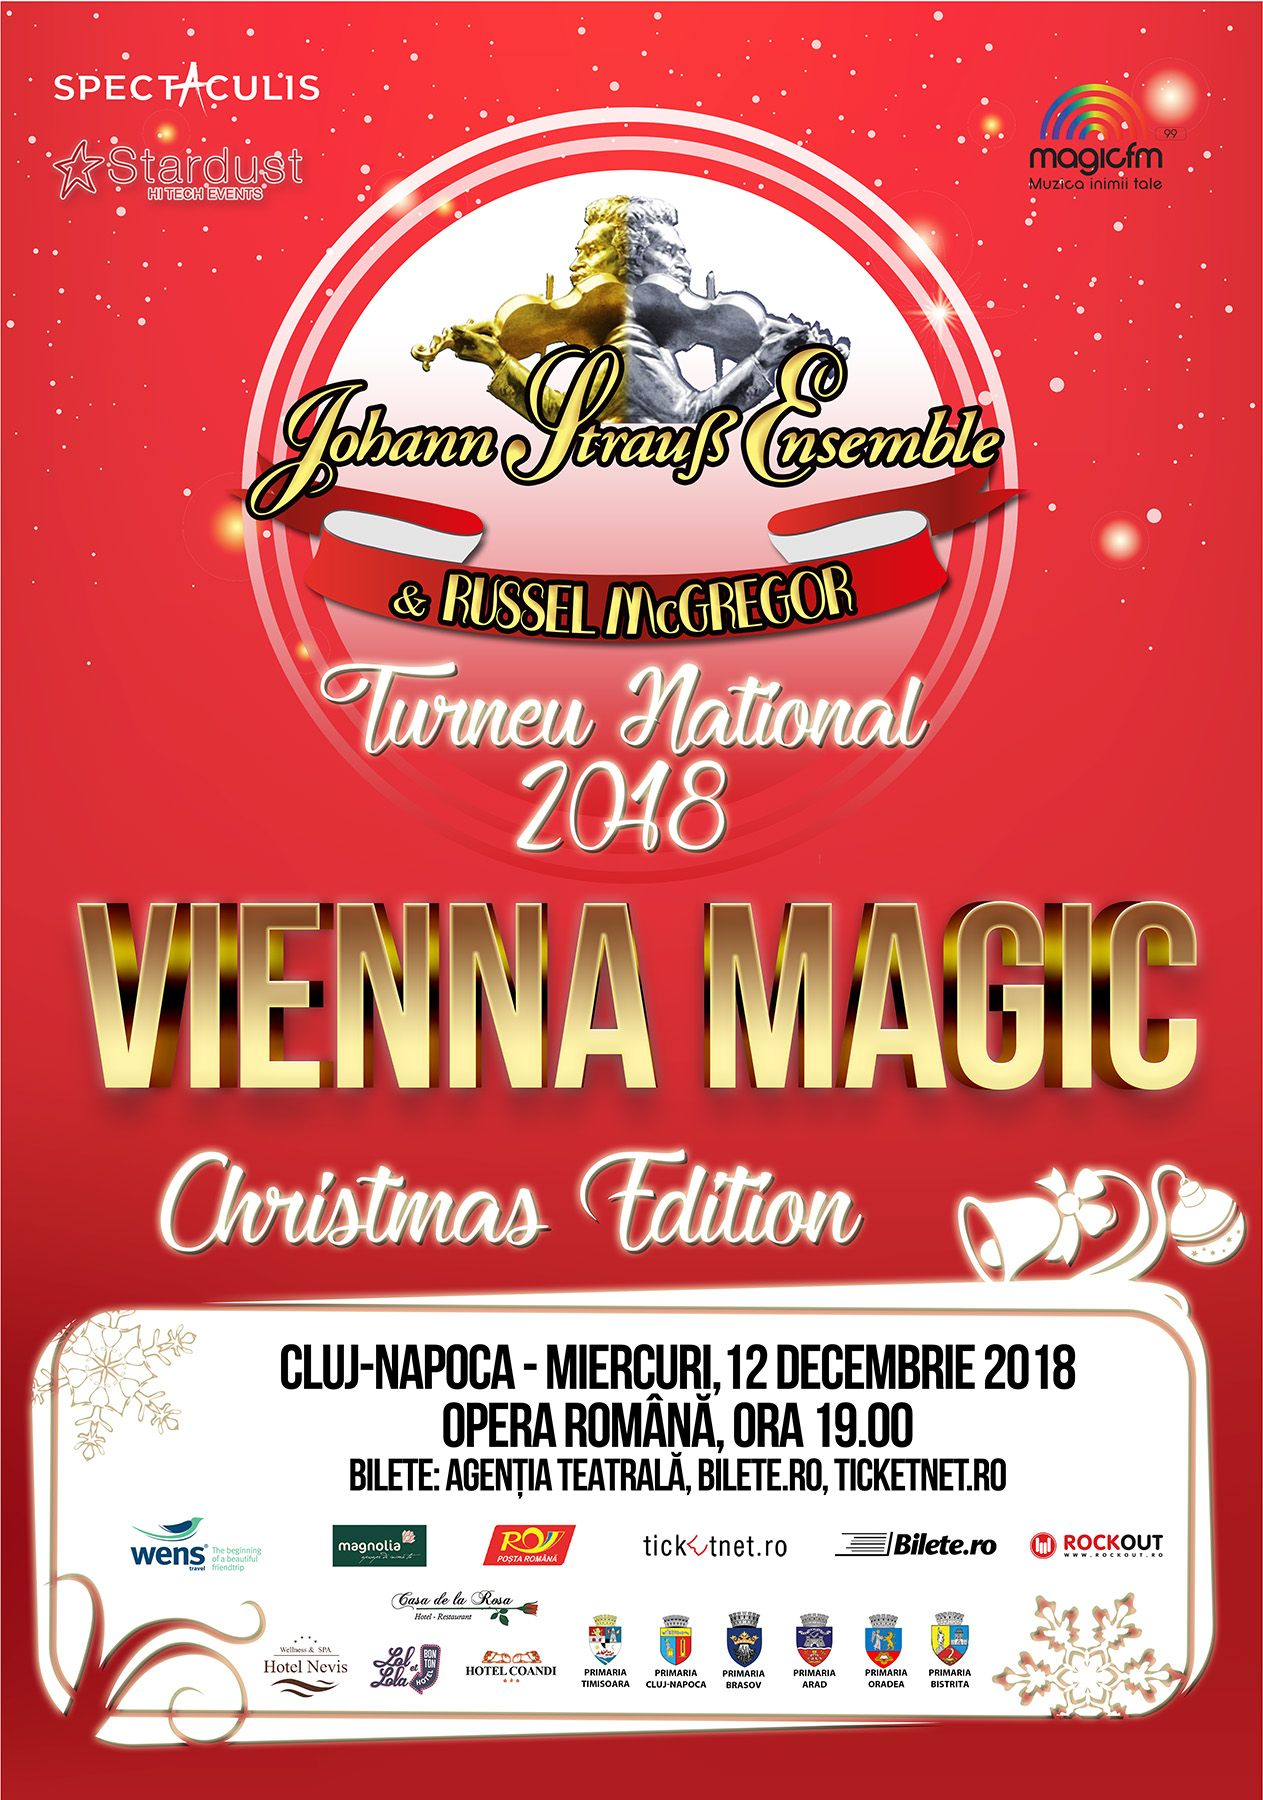 Johann Strauss Ensemble - Vienna Magic - Christmas Edition